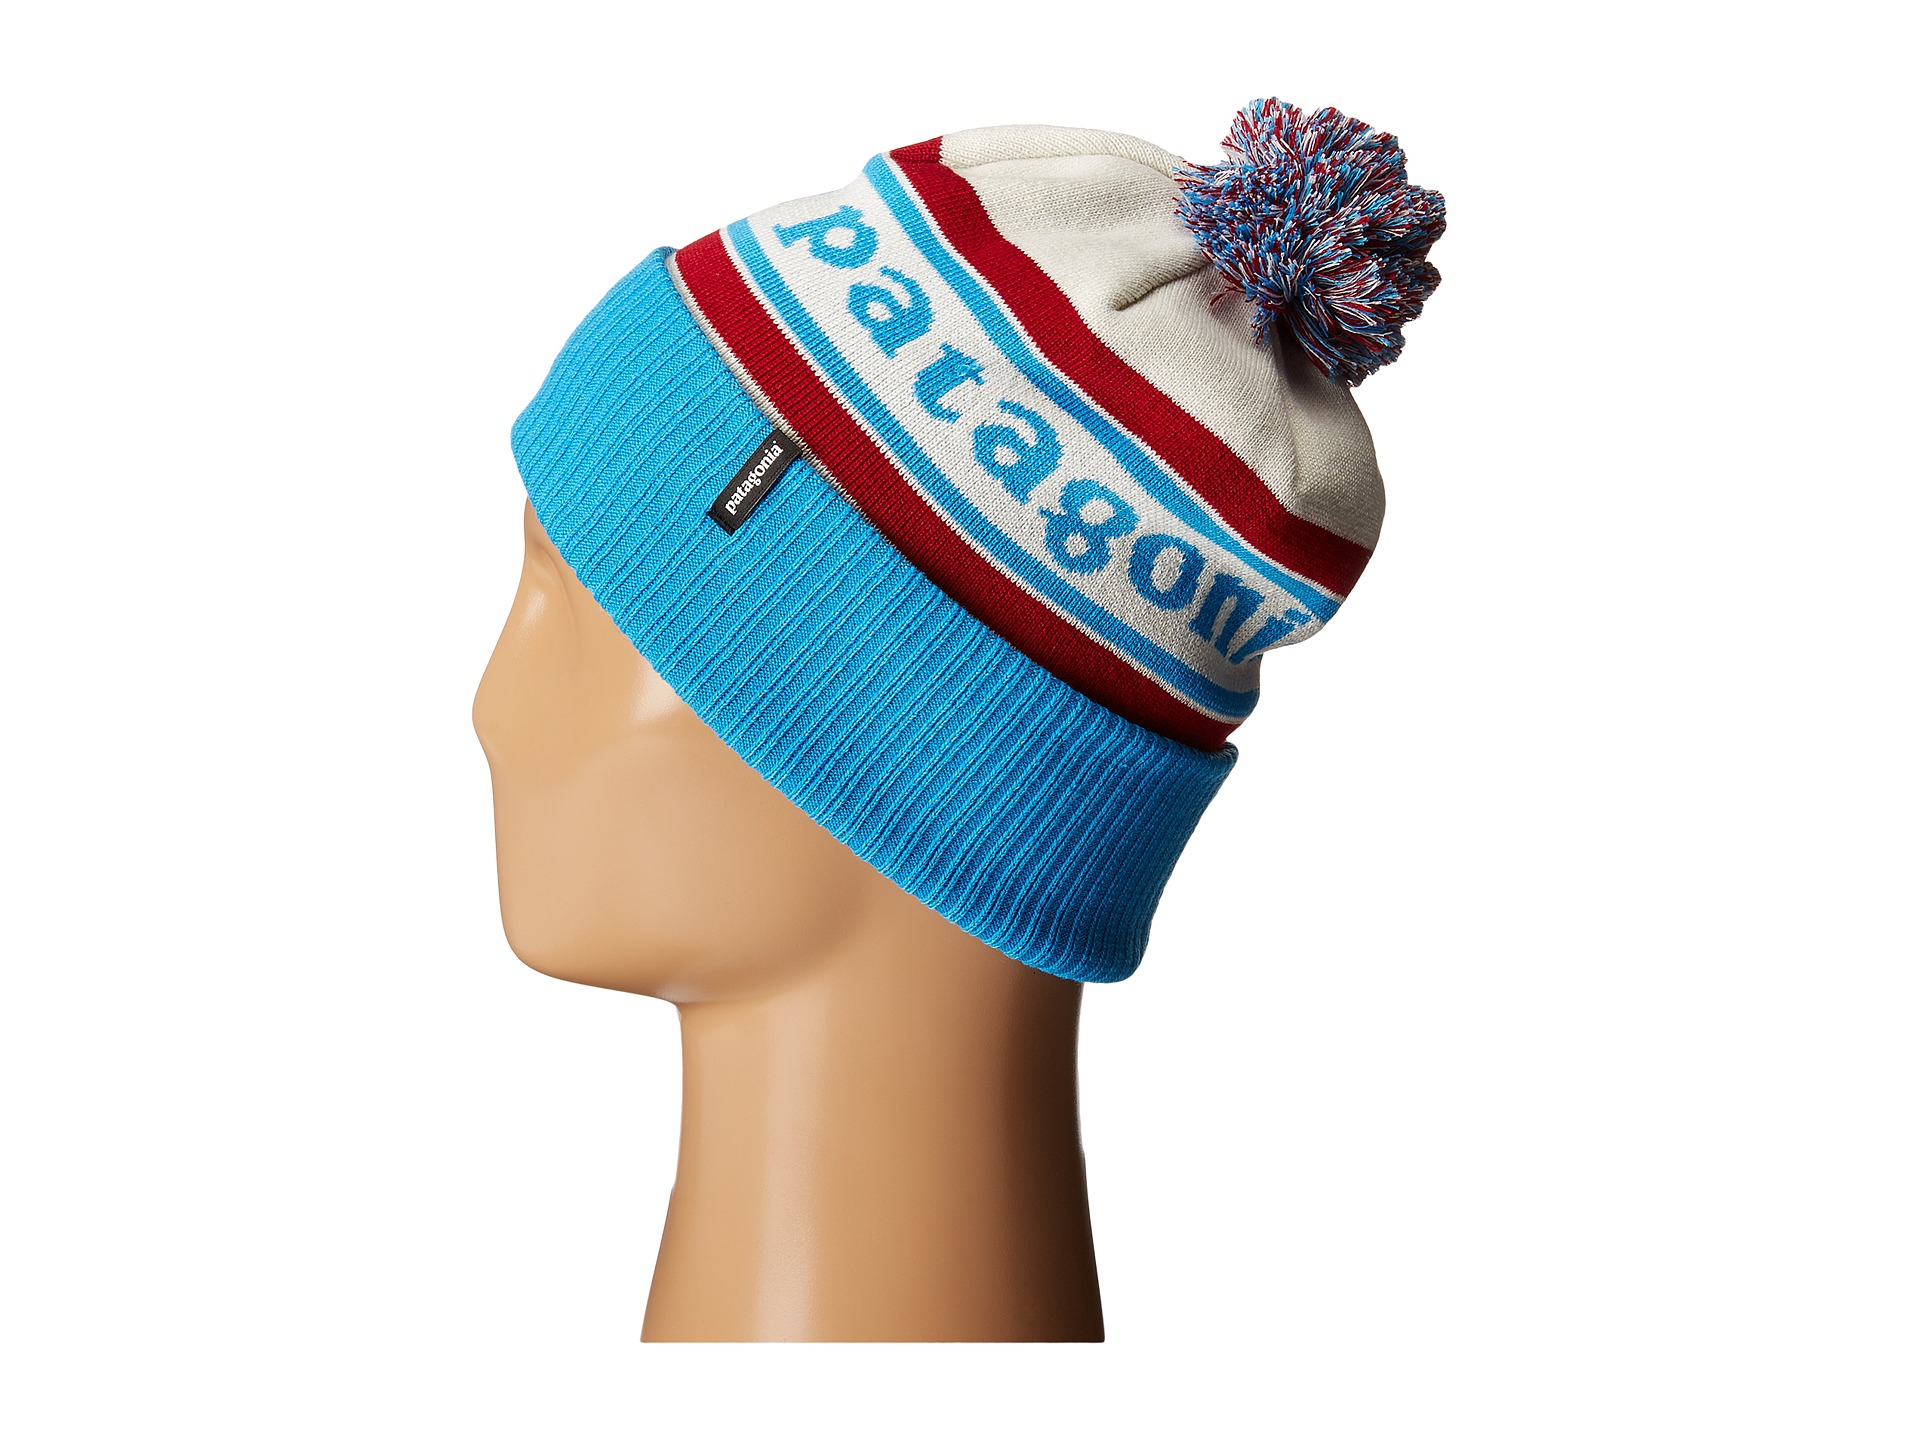 bf0d8b097d0 Lyst - Patagonia Powder Town Beanie in Red